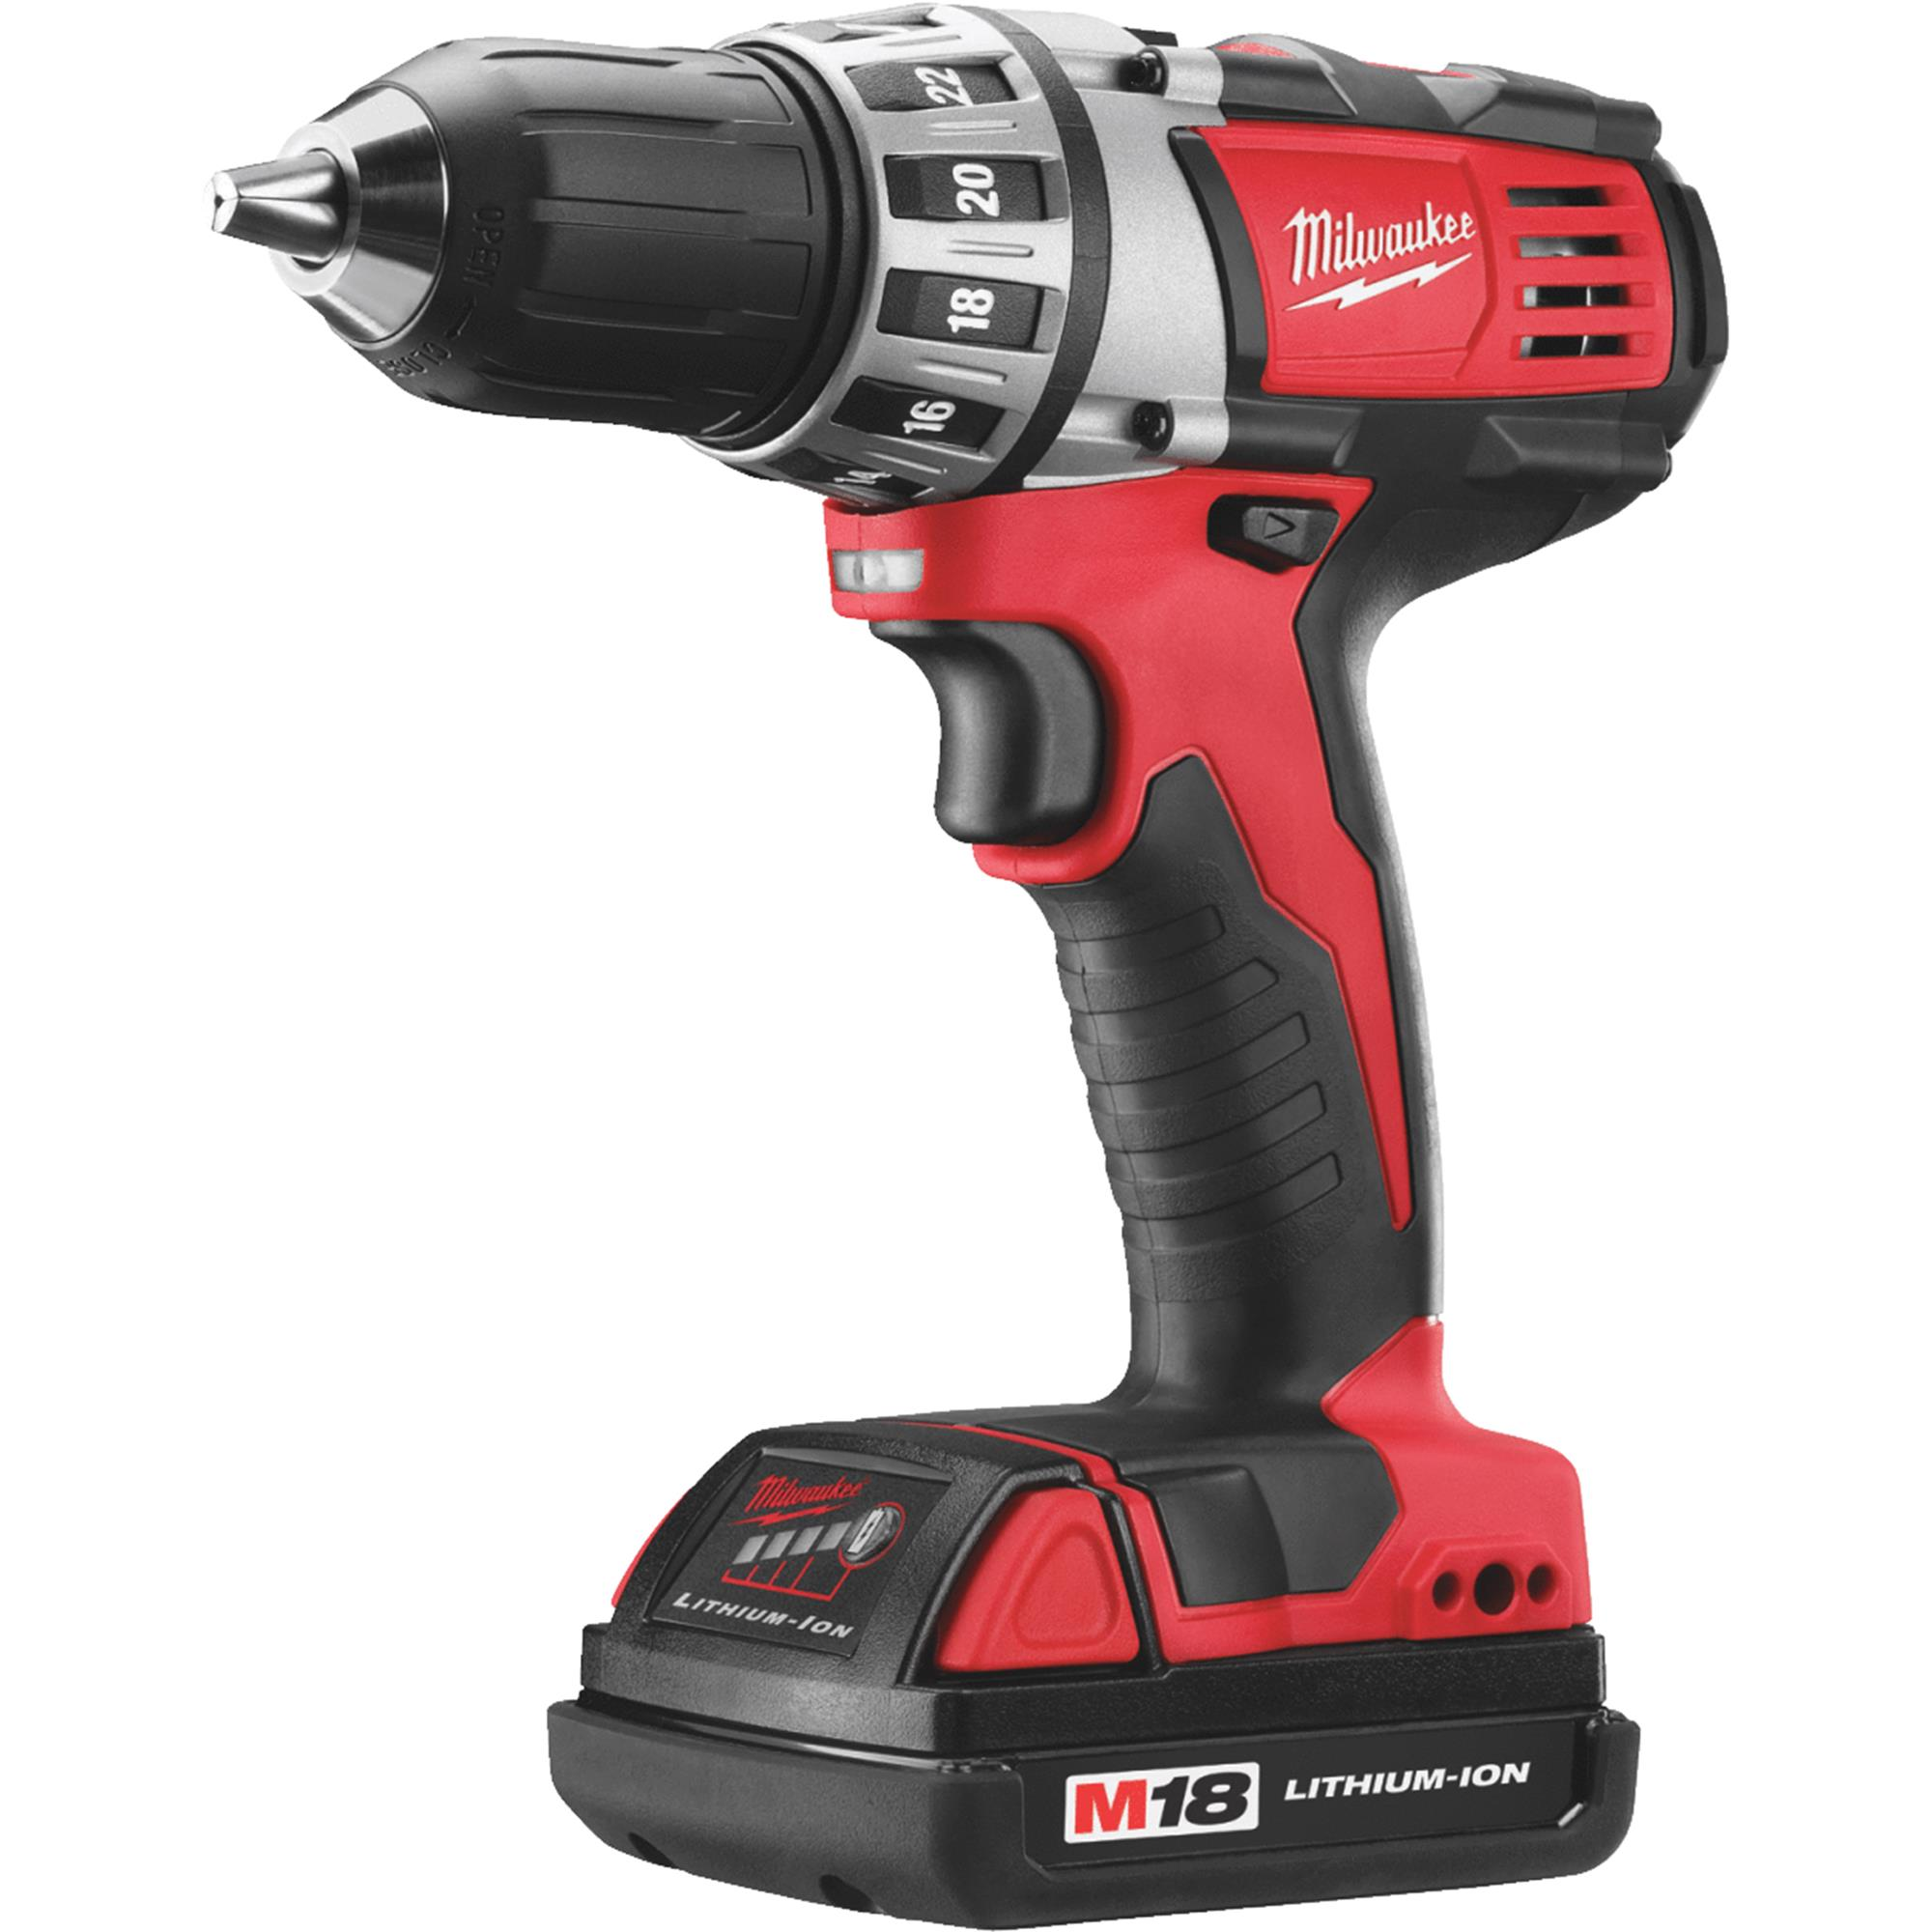 Milwaukee M18 Compact Drill Driver Kit, 1 2 In. by Jensen (Home Improvement)